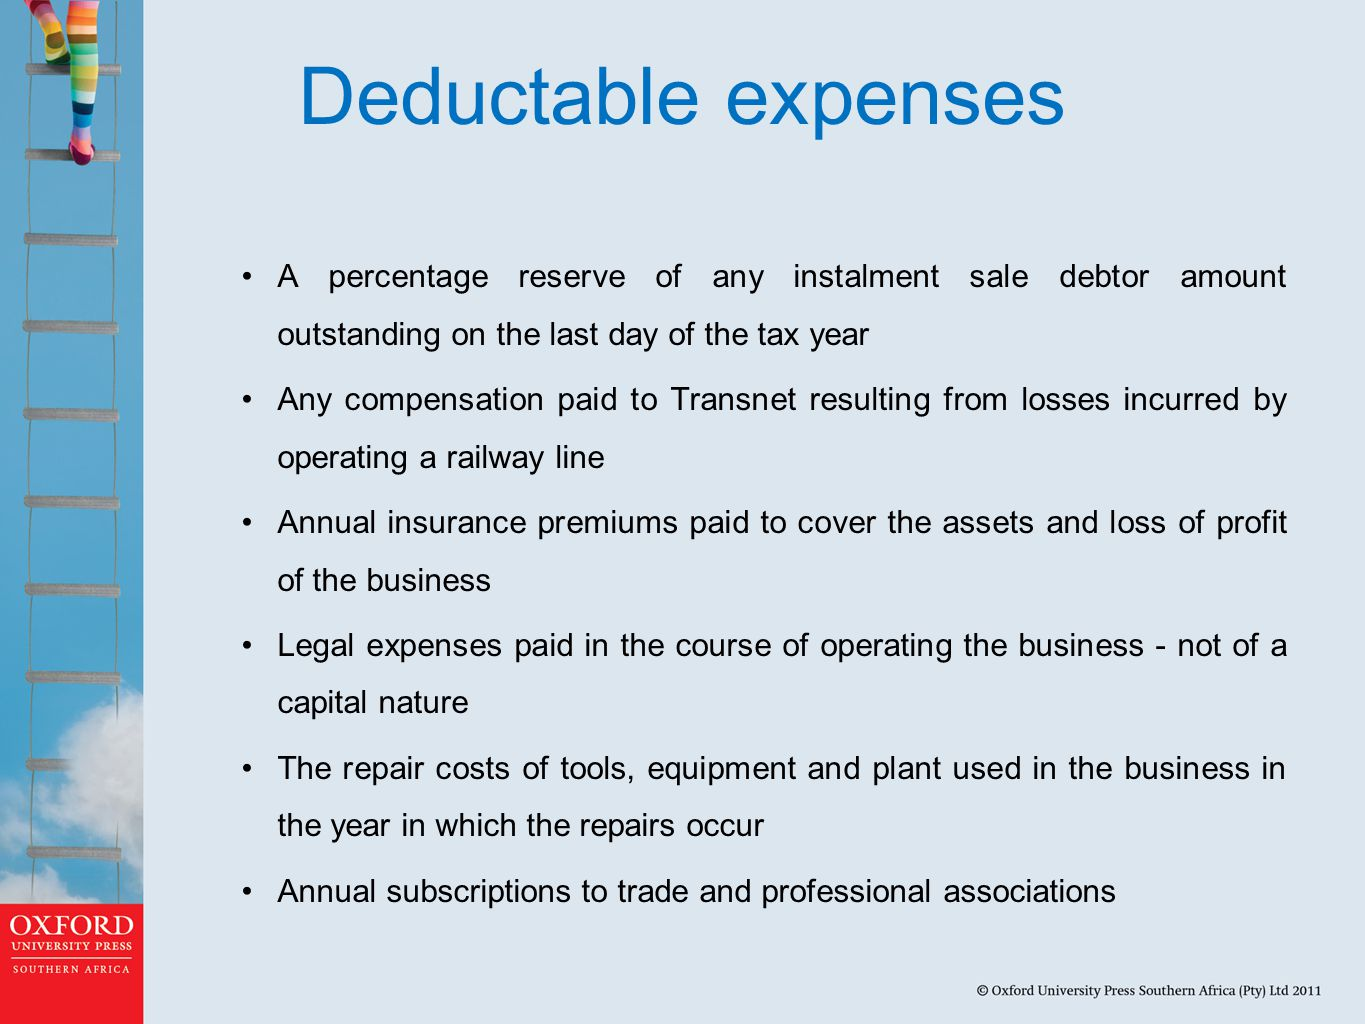 Deductable expenses A percentage reserve of any instalment sale debtor amount outstanding on the last day of the tax year Any compensation paid to Transnet resulting from losses incurred by operating a railway line Annual insurance premiums paid to cover the assets and loss of profit of the business Legal expenses paid in the course of operating the business - not of a capital nature The repair costs of tools, equipment and plant used in the business in the year in which the repairs occur Annual subscriptions to trade and professional associations